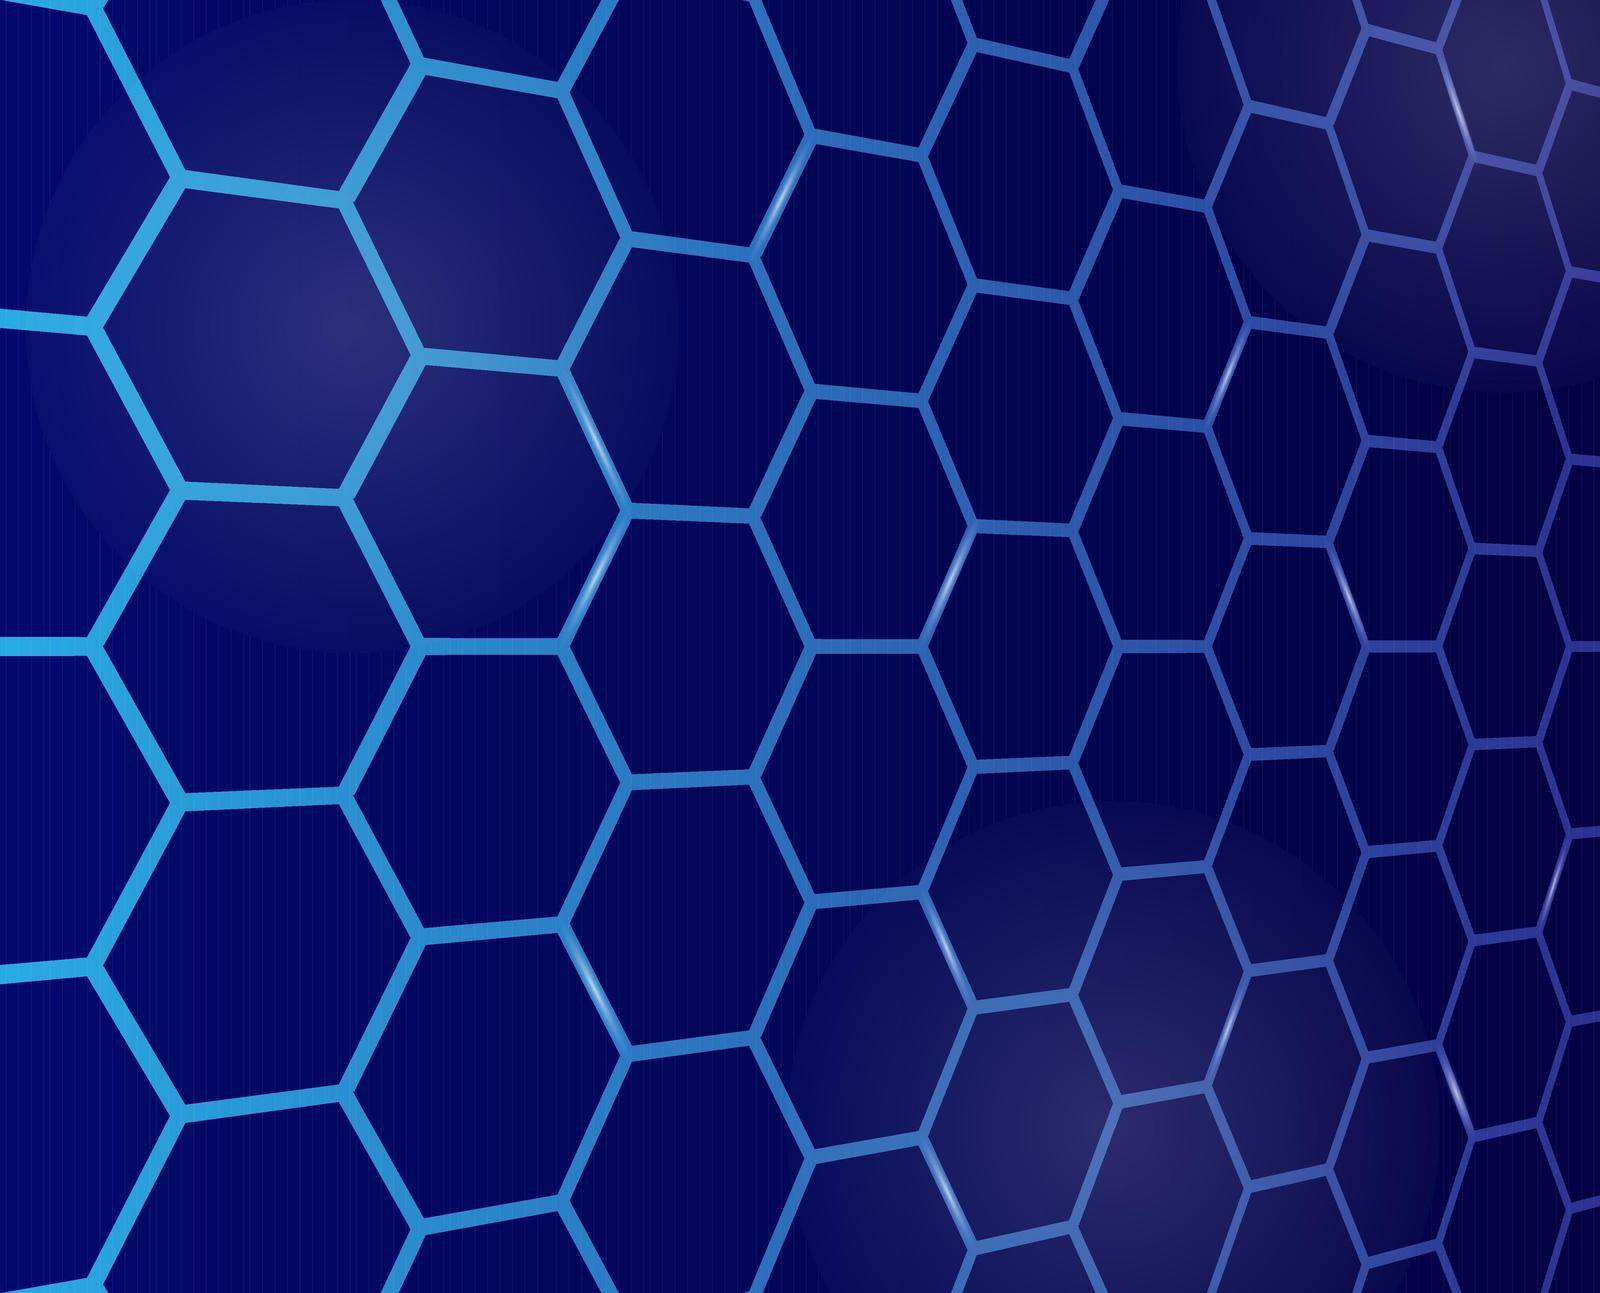 Seamless geometric pattern of intersecting lines creating hexagons. An ornament for texture, textiles and simple backgrounds is a seamless geometric pattern of intersecting lines forming hexagons. flat style